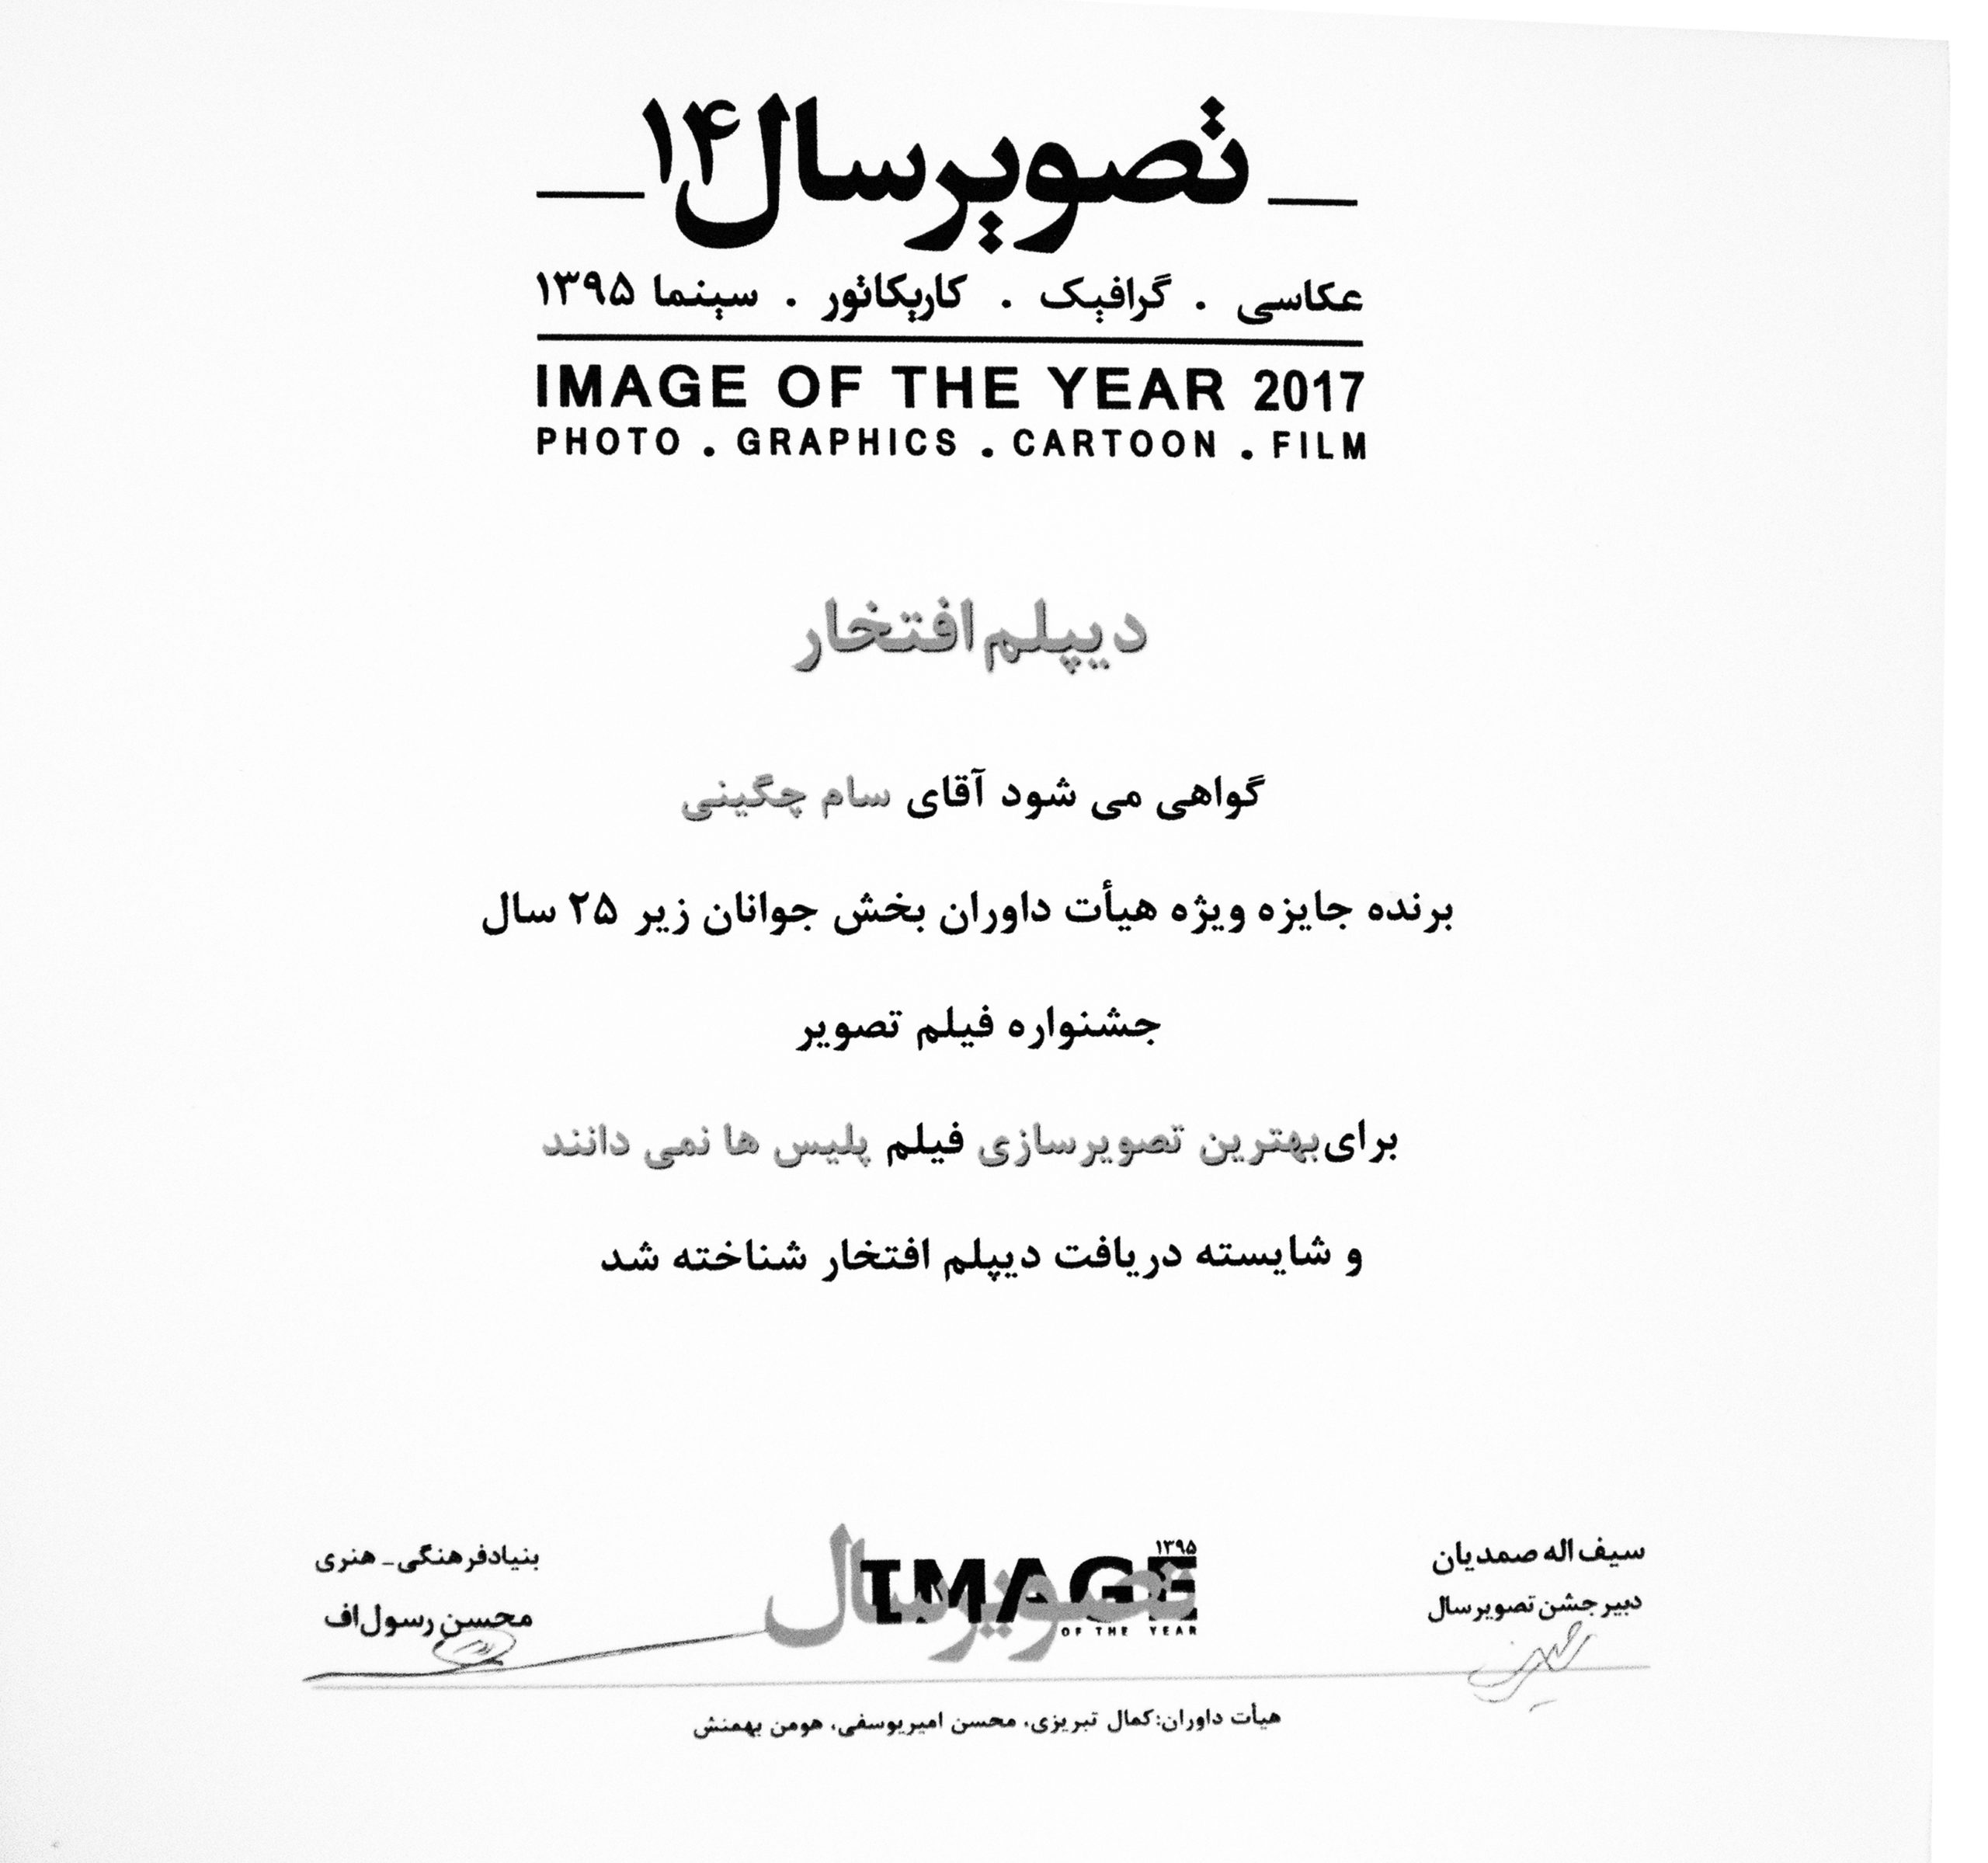 certificate from Image of the Year